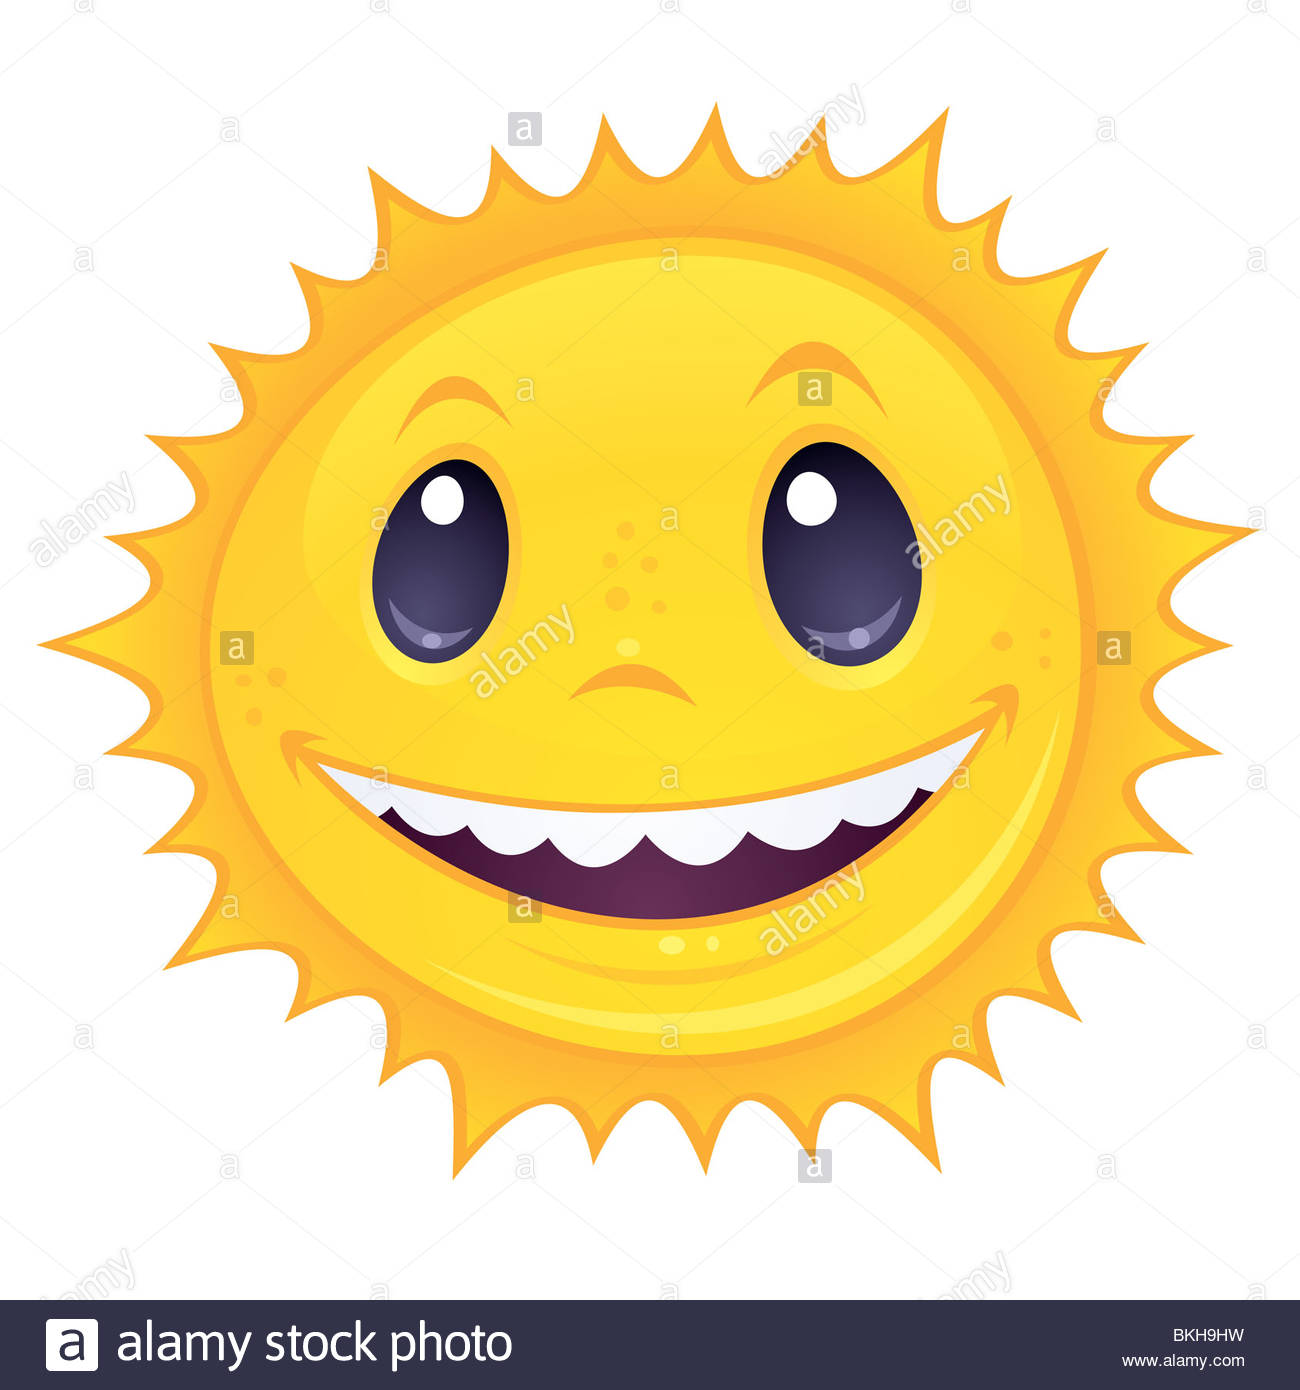 1300x1390 Smiley Sun. Vector Cartoon Drawing Of A Happy, Smiling Sun. Great